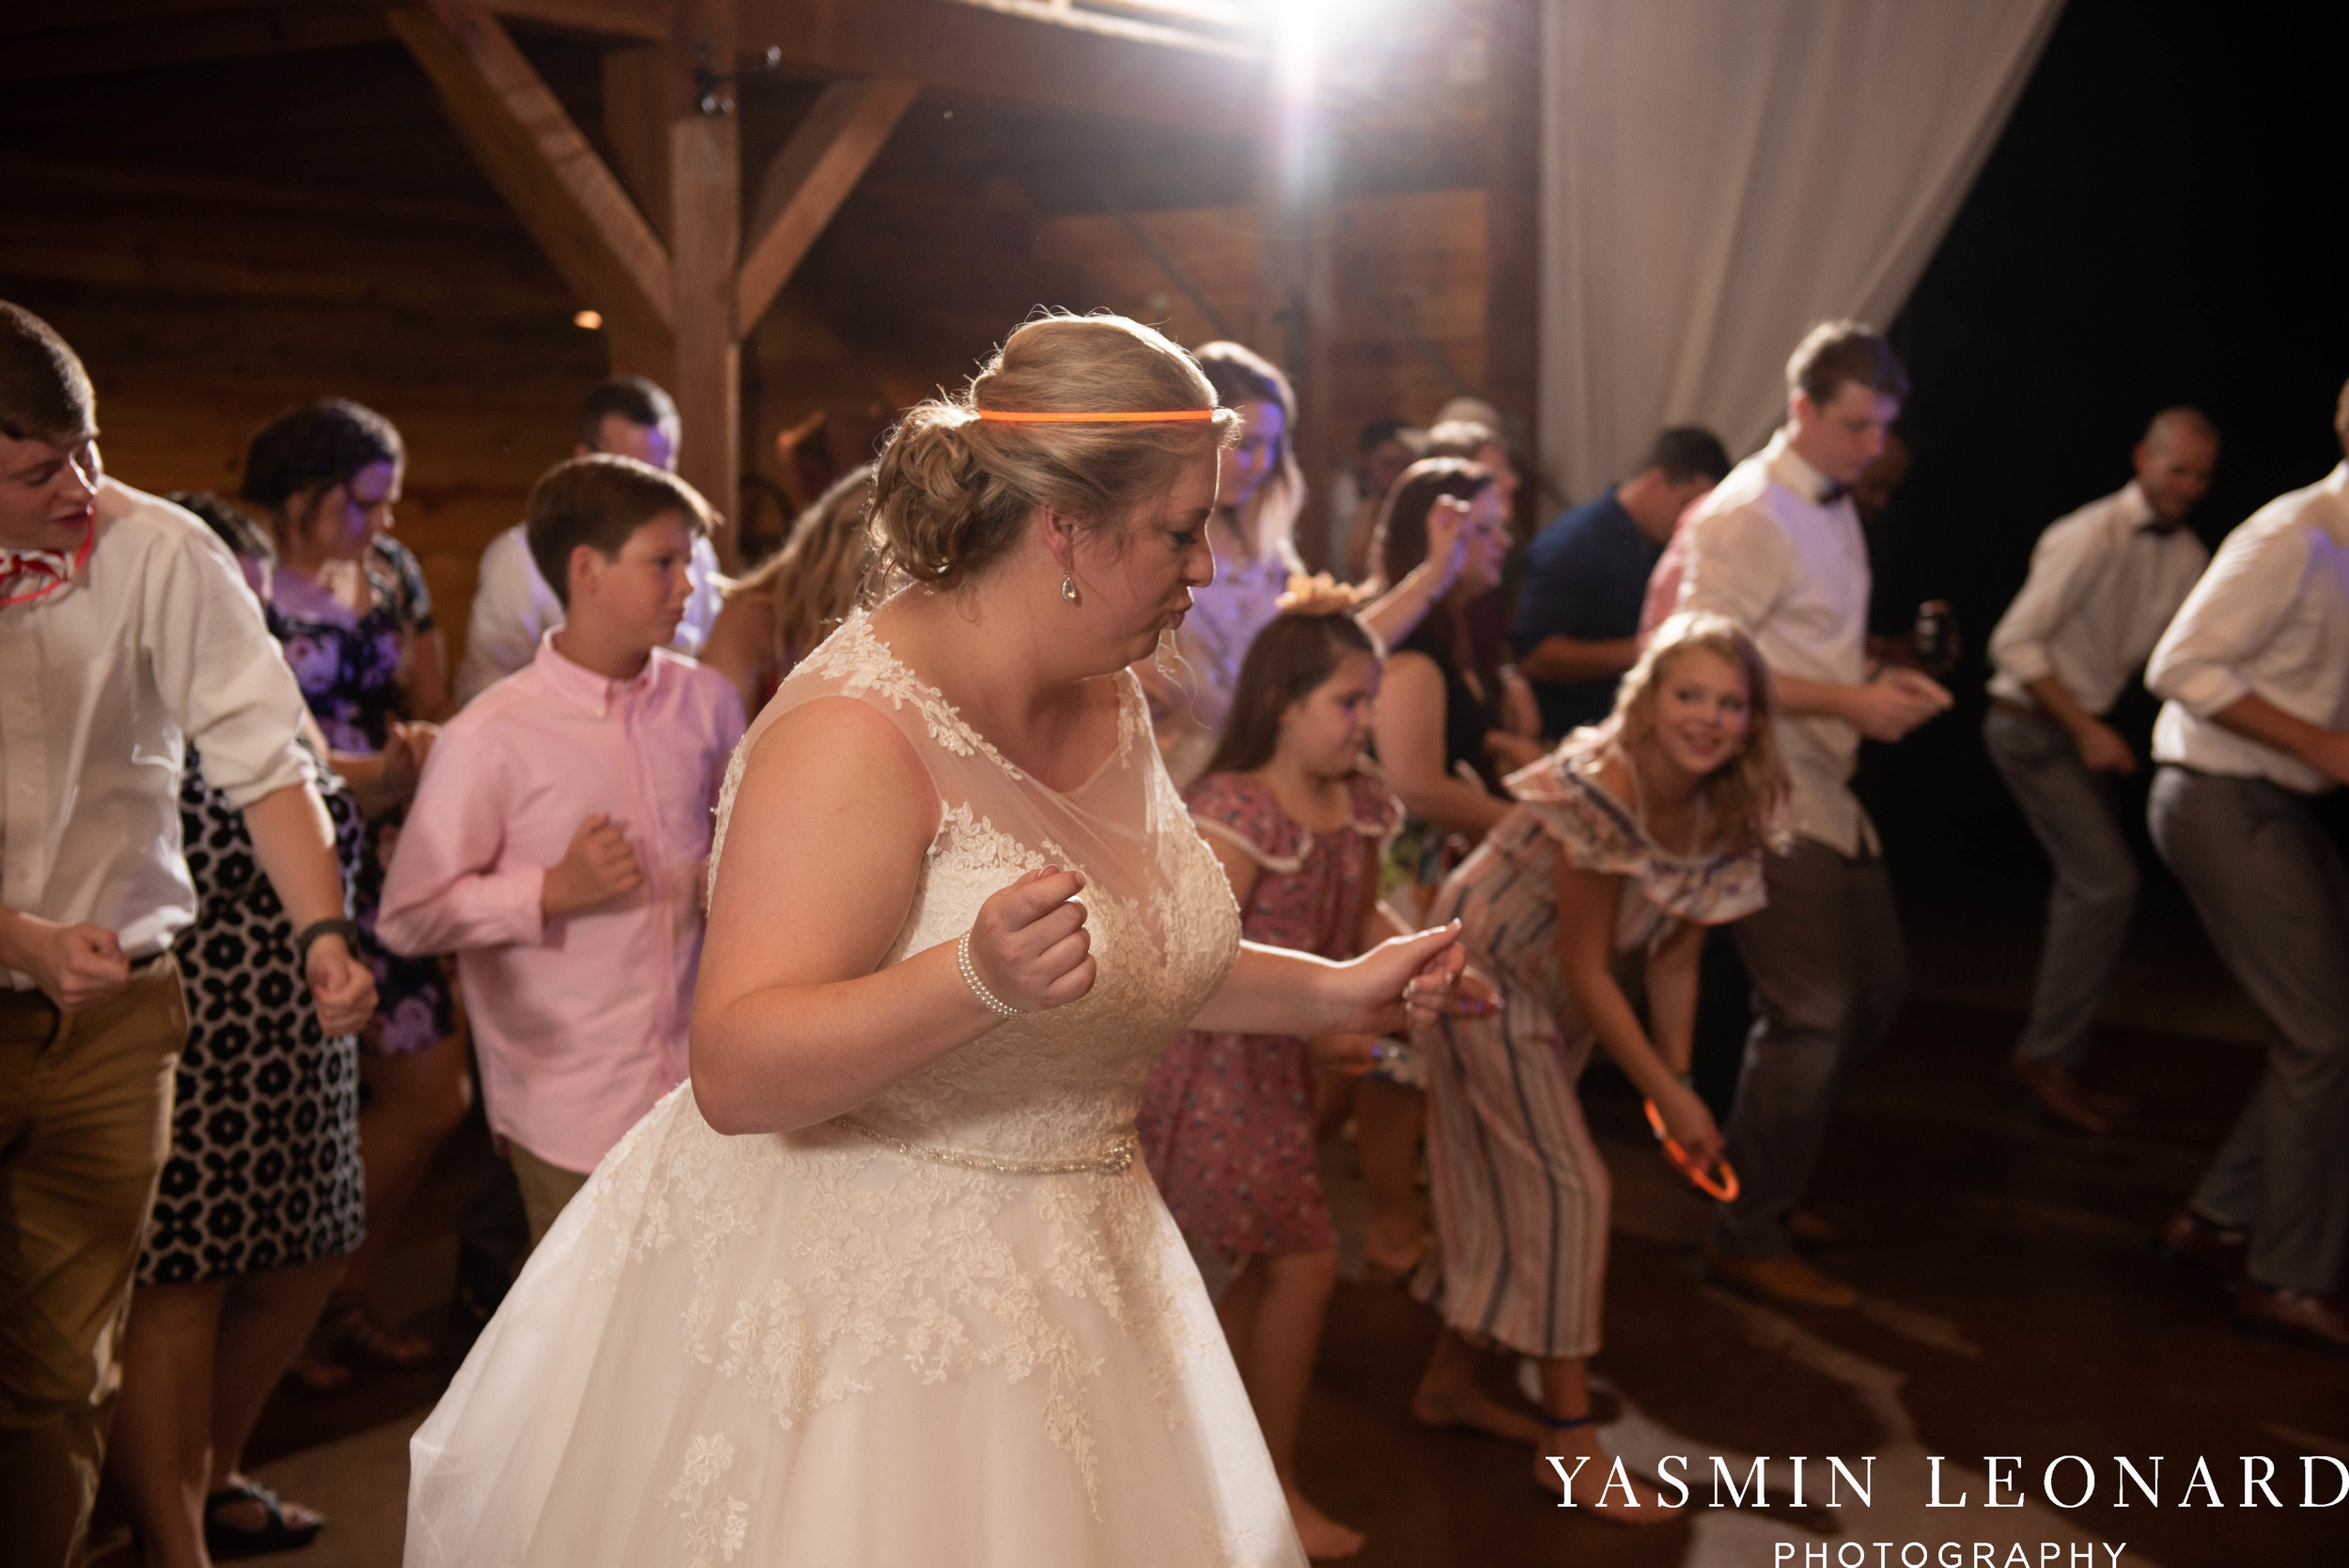 Danner Farms - NC Wedding Venues - NC Barns - Statesville NC - NC Wedding Photographer - High Point Wedding Photographer - Yasmin Leonard Photography-93.jpg